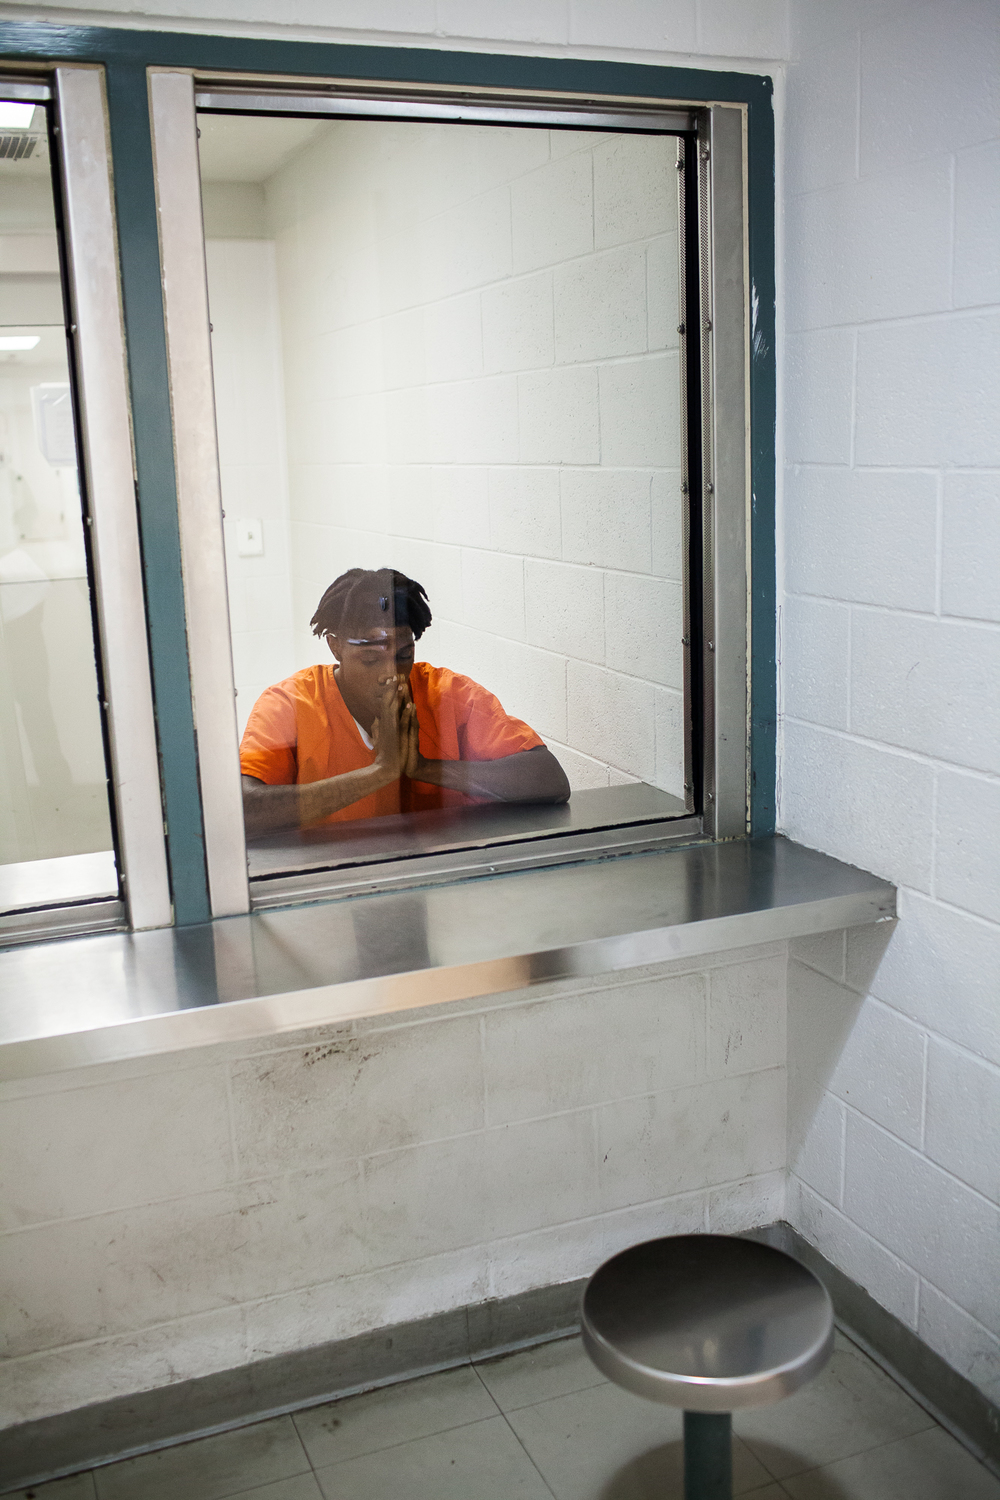 Rashard Johnson at the Durham County Detention Center after being arrested for cutting off his house arrest ankle monitor, violating his probation, and going on the run for two months. Without a GED or a job, Rashard couldn't repay his restitution and succumbed to frustration in 2012.